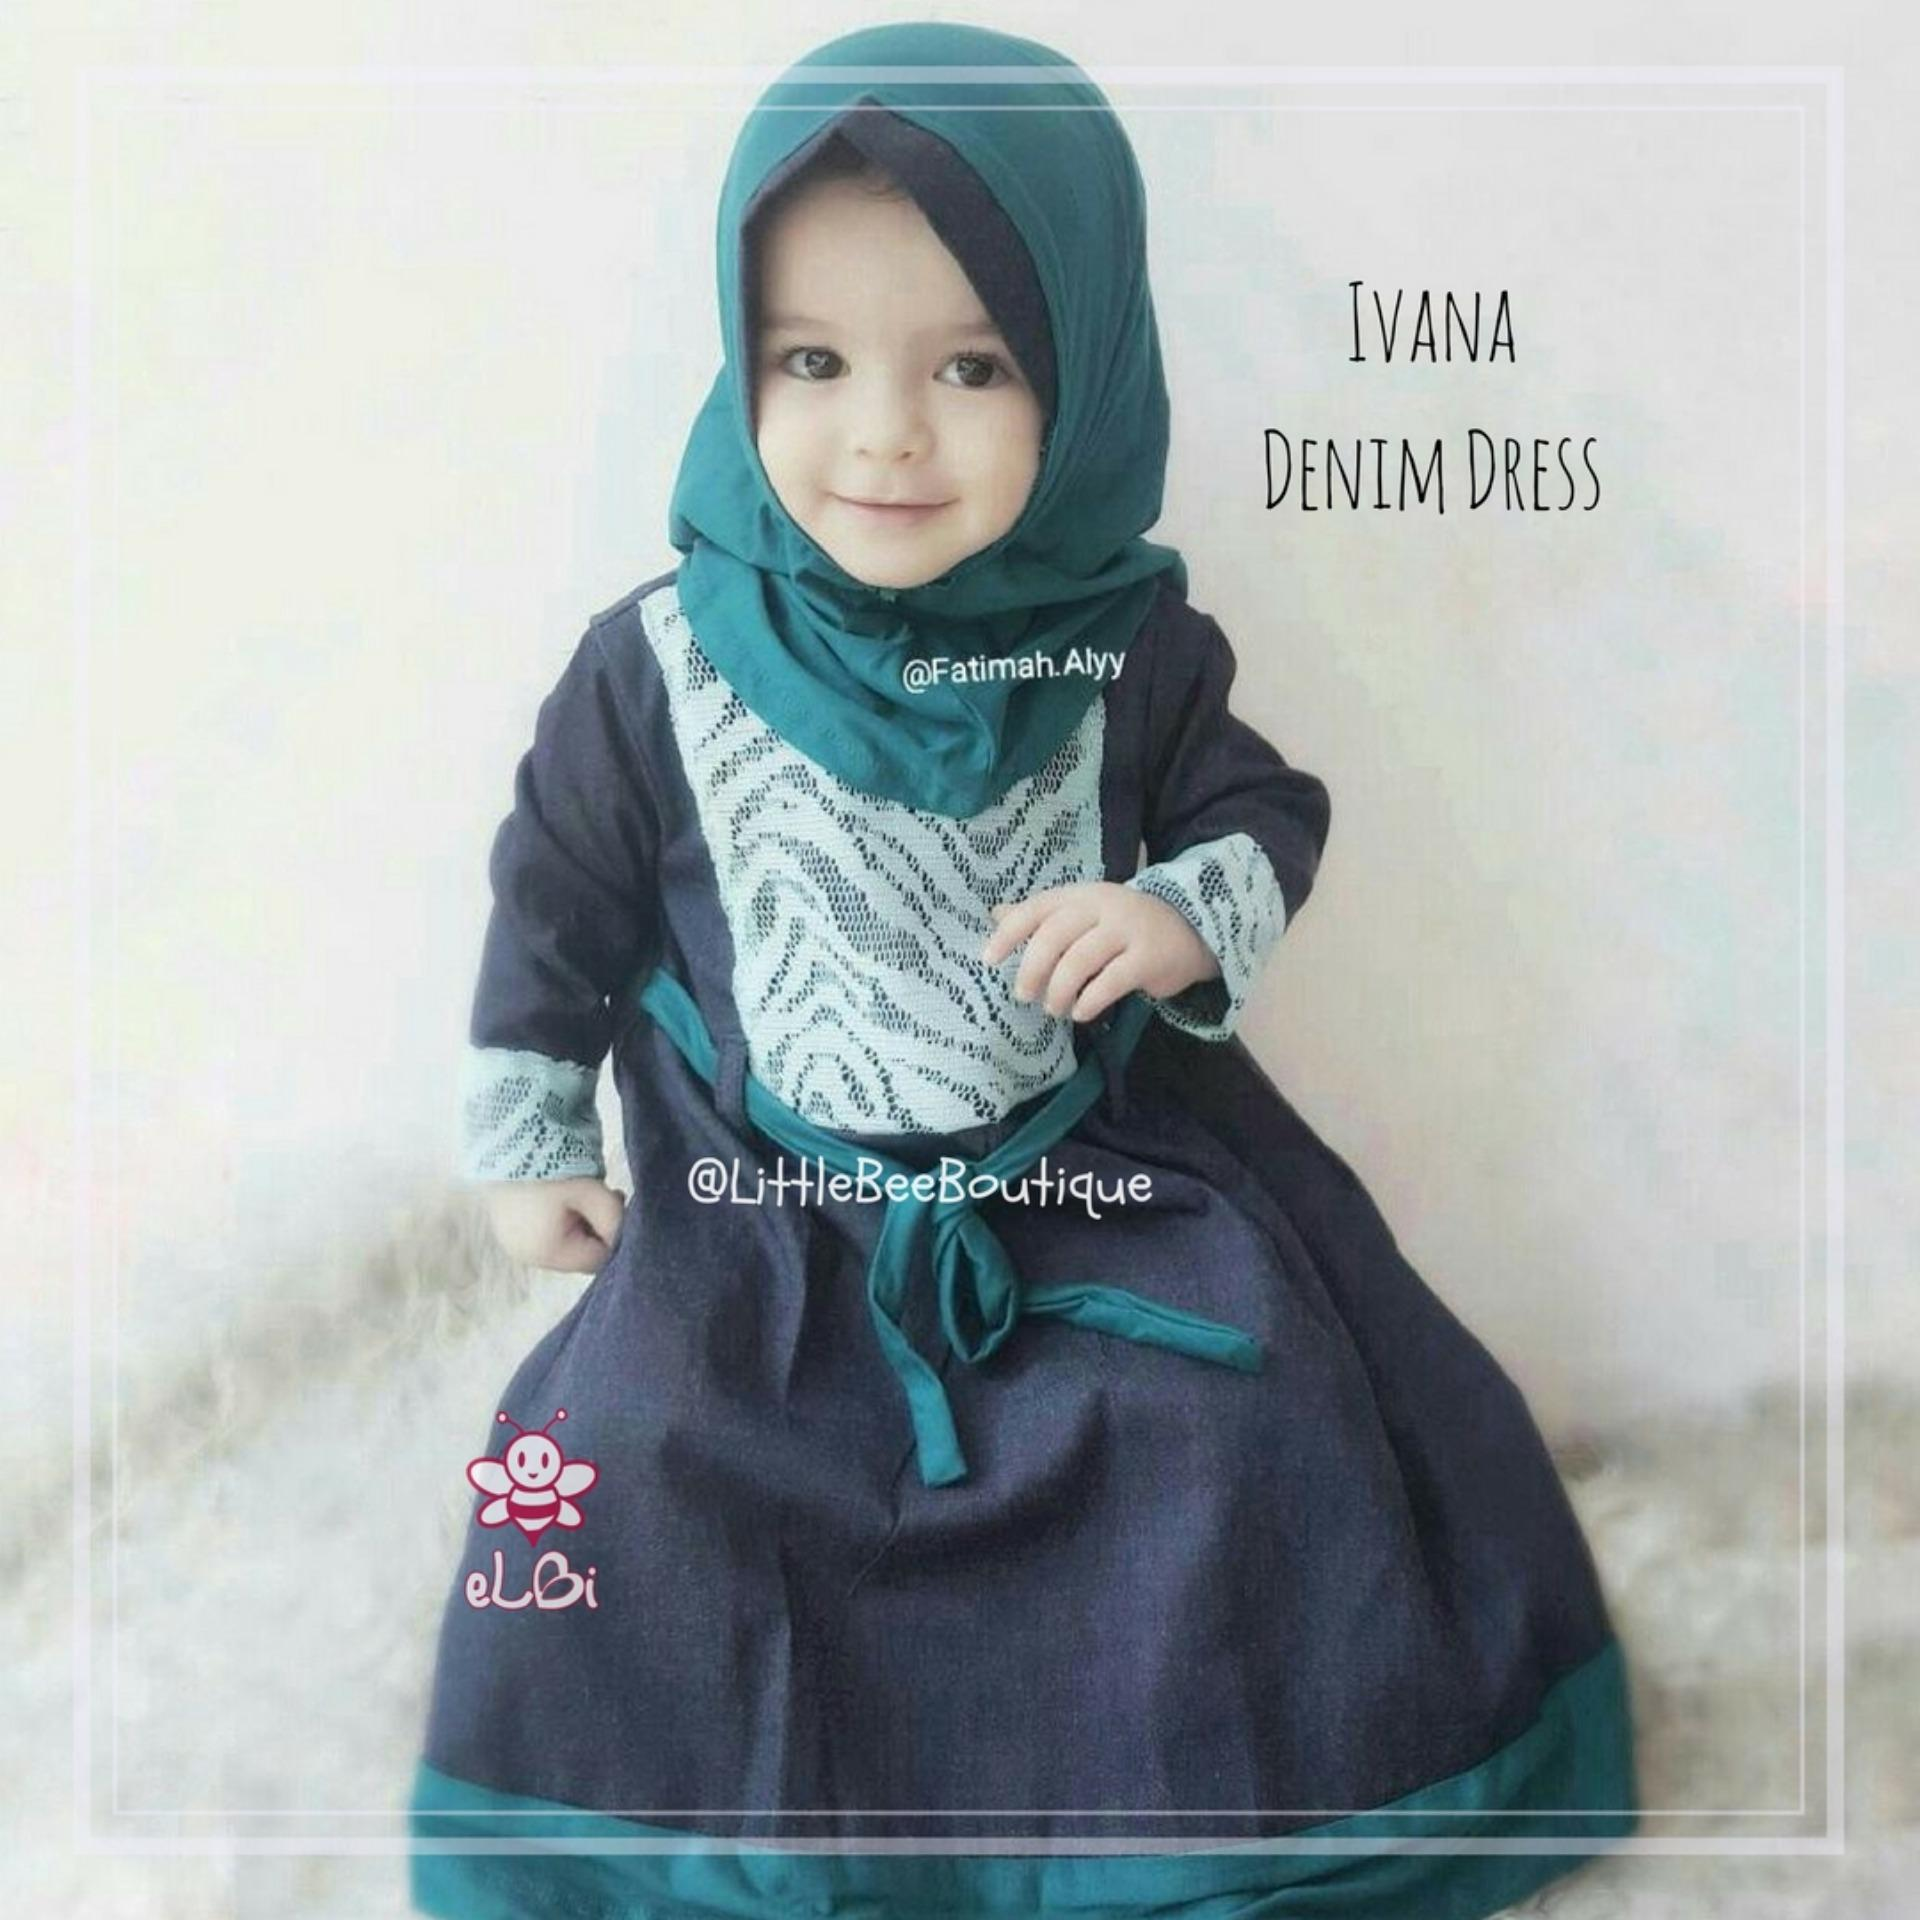 eLBi Gamis Anak Balita Muslim Perempuan Ivana Dress by Little Bee Boutique